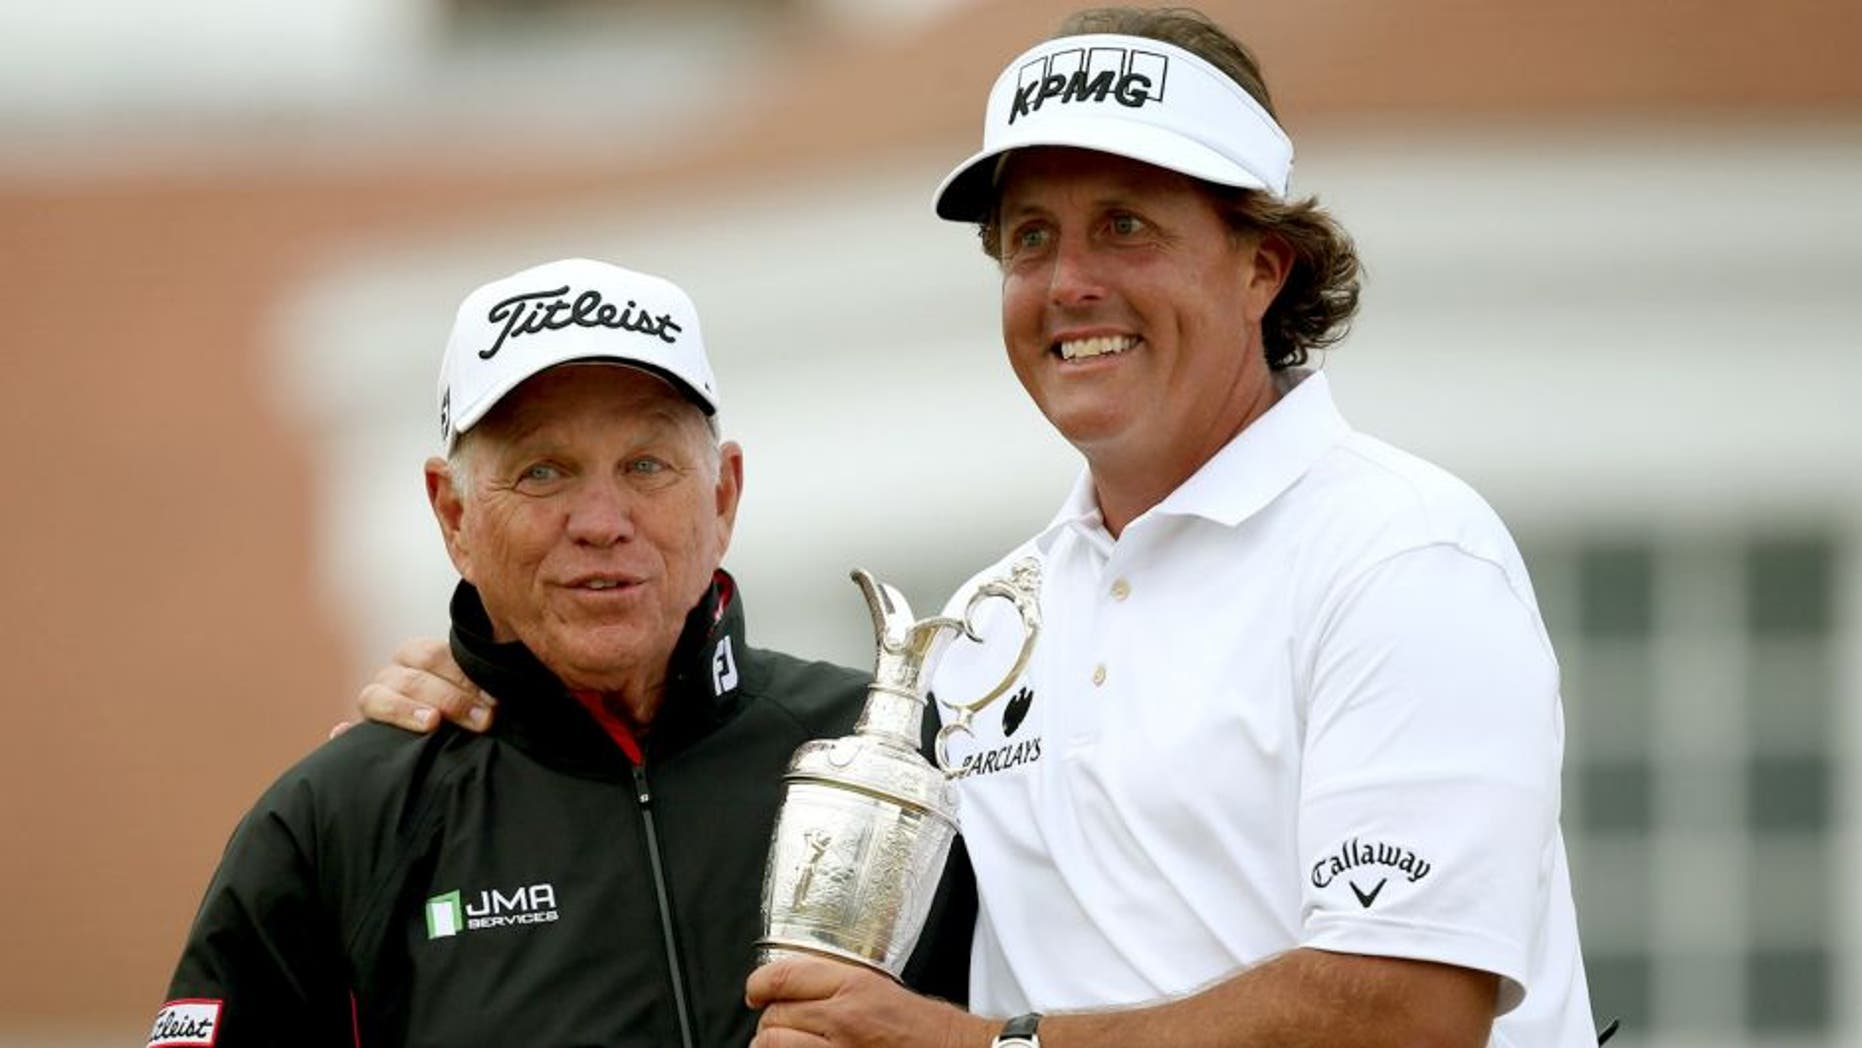 US golfer Phil Mickelson poses for pictures with his coach Butch Harmon and his trophy the Claret Jug after winning the 2013 British Open Golf Championship at Muirfield golf course at Gullane in Scotland on July 21, 2013. Mickelson won the British Open at Muirfield with a superb final round of 66. The 43-year-old American won with a three under total of 281, three strokes clear of Henrik Stenson who had a closing 70.AFP PHOTO/ADRIAN DENNIS (Photo credit should read ADRIAN DENNIS/AFP/Getty Images)